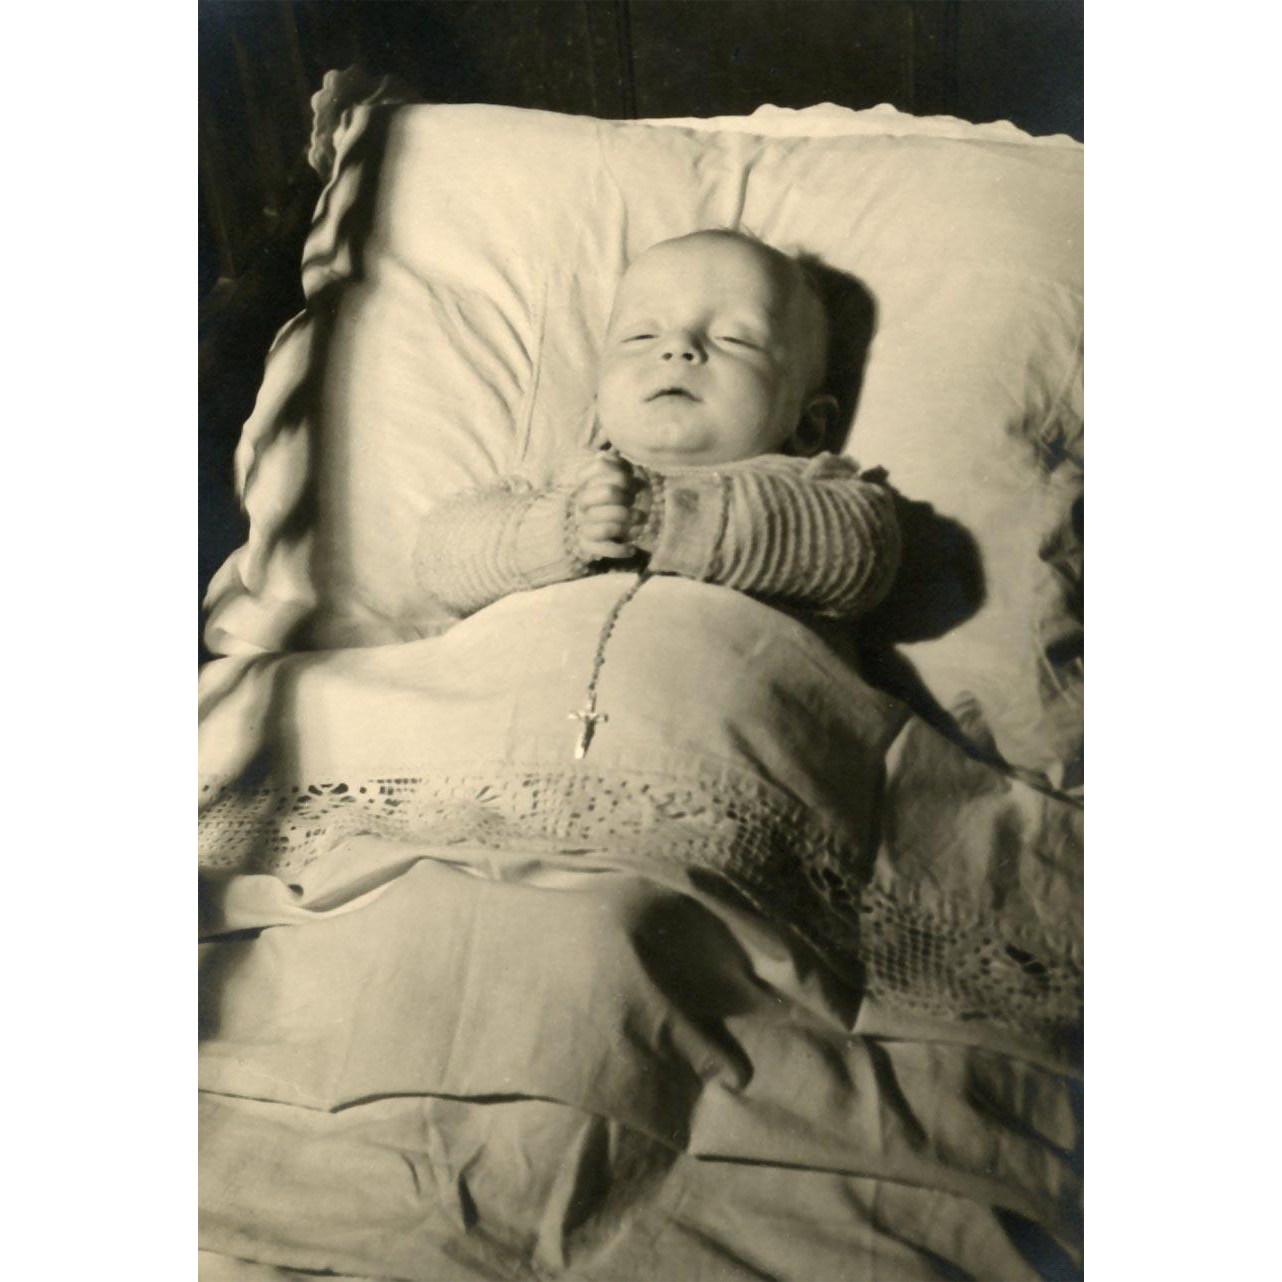 Post-mortem Photograph Baby with Eyes Slightly Open, Entwined Fingers and Rosary, Memorial Portraiture Mourning Portrait